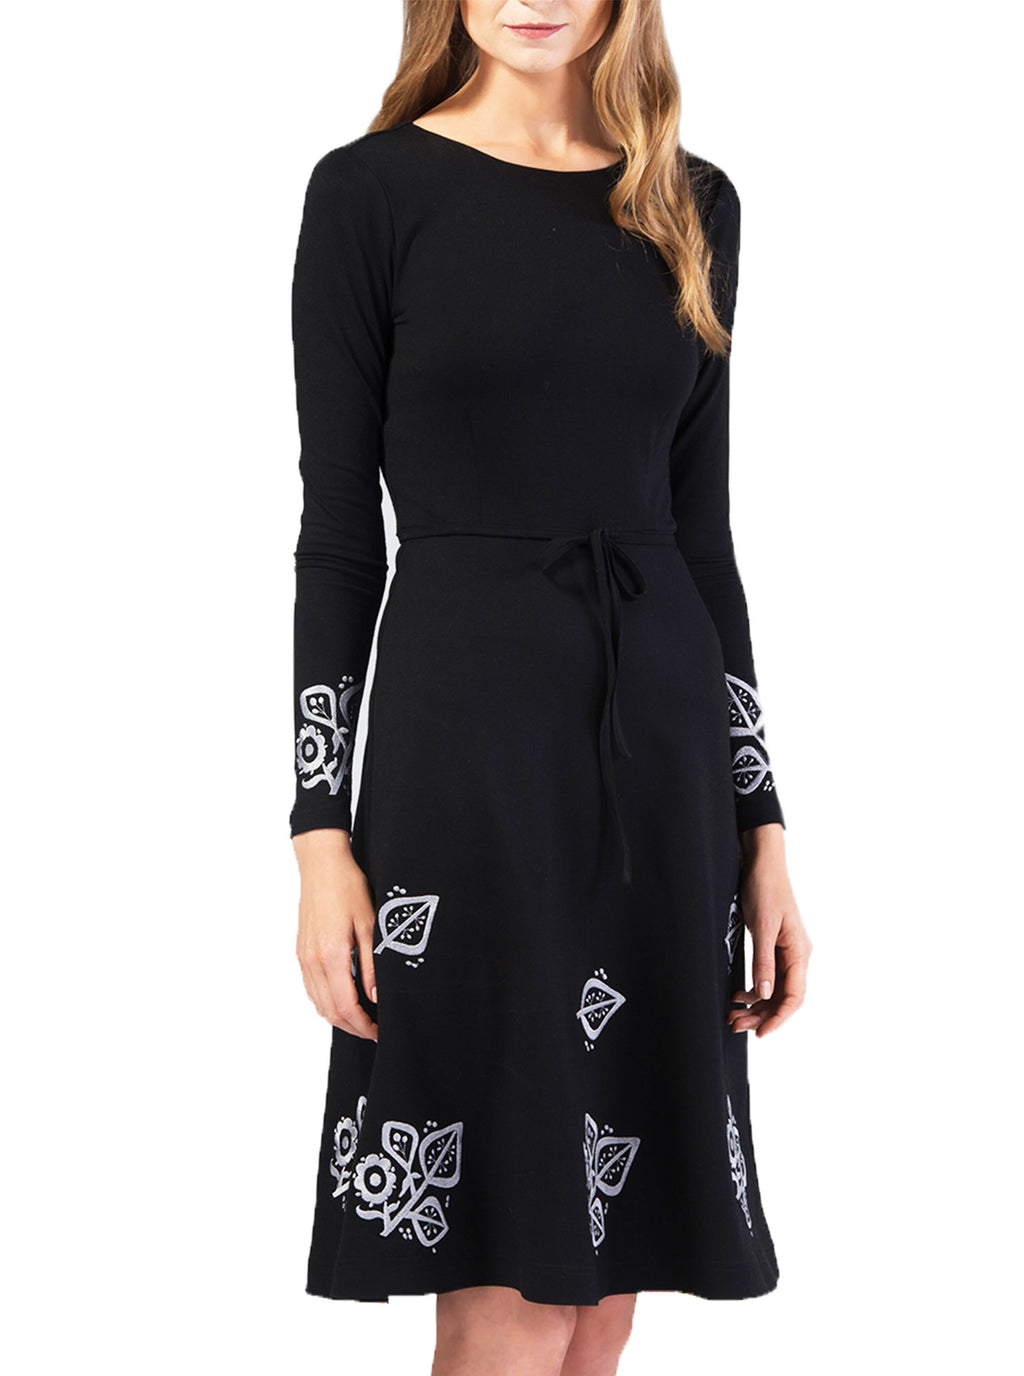 Black Bamboo Embroidered Dress SUSI